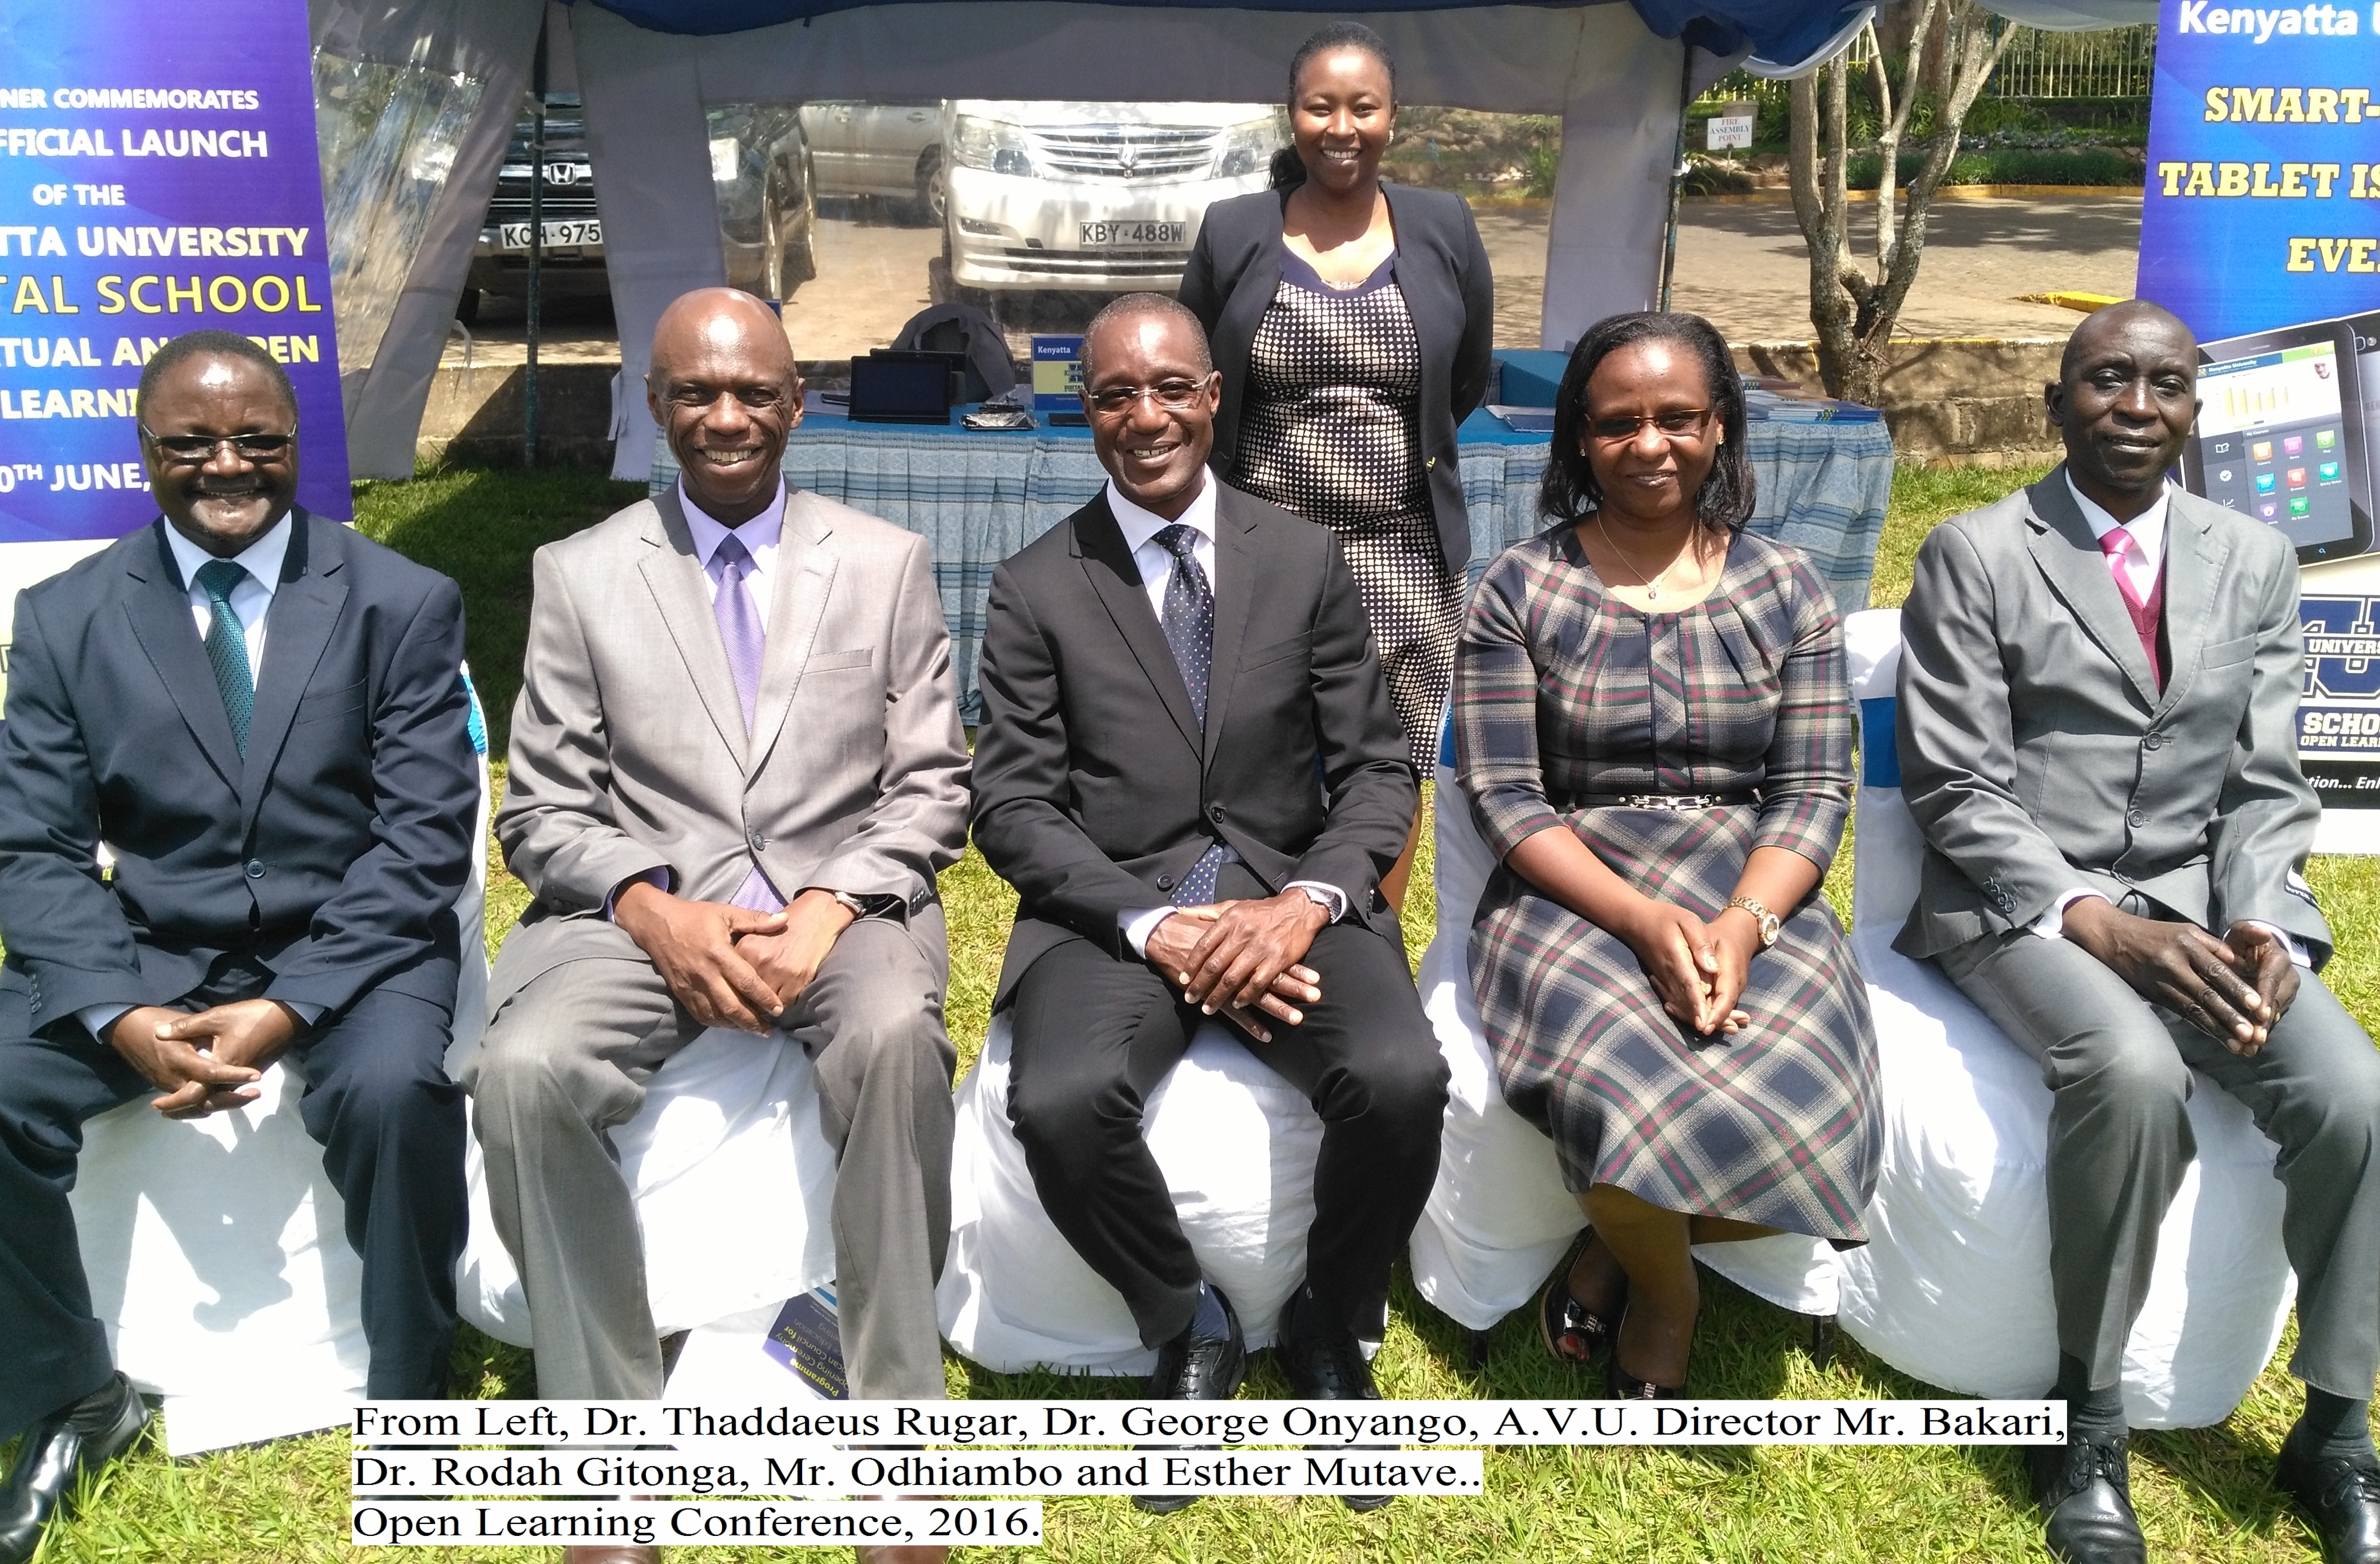 From Left, Dr. Thaddaeus Rugar,Dr. George Onyango, African Virtual University Rector; Dr. Bakari Diallo,Dr. Rhoda Gitonga,Mr. Odhiambo and Esther Mutave